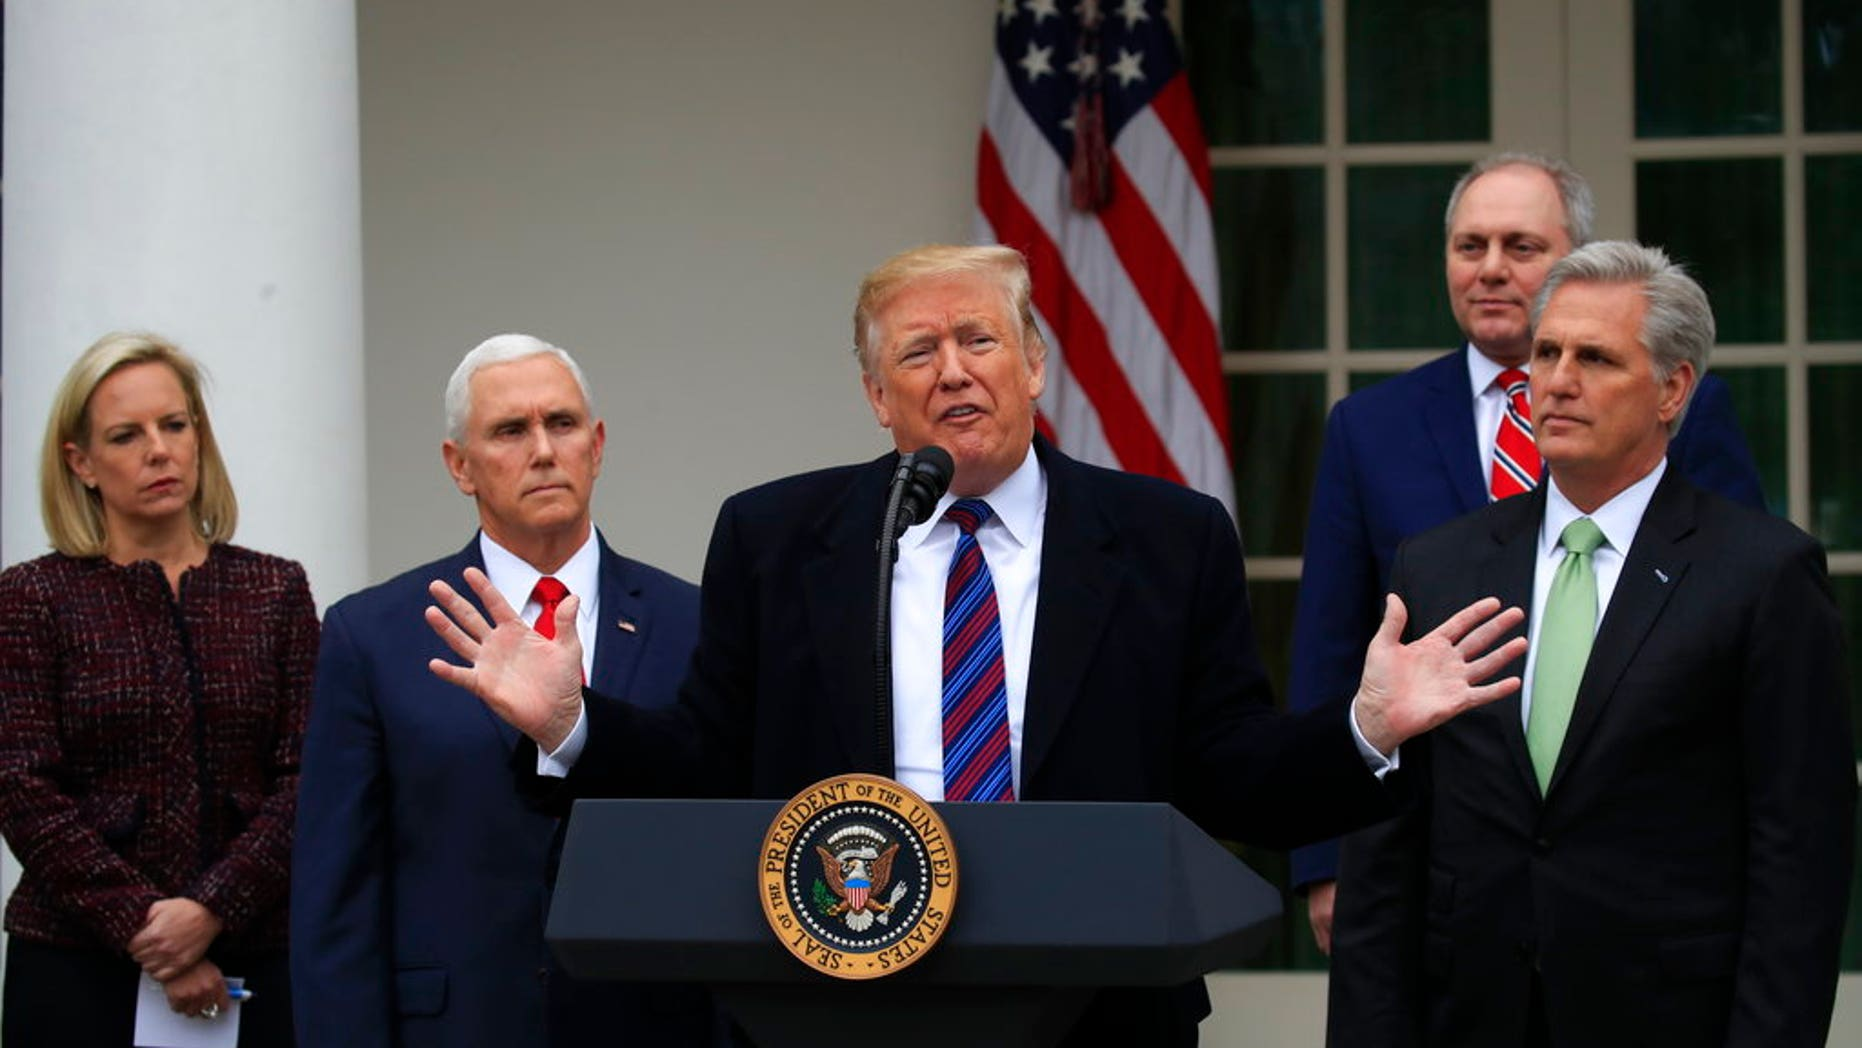 President Donald Trump speaks in the Rose Garden of the White House in Washington, after a meeting with Congressional leaders on border security, as the government shutdown continues Friday, Jan. 4, 2019, as Homeland Security Secretary Kirstjen Nielsen, Vice President Mike Pence, House Minority Whip Steve Scalise of La., and House Minority Leader Kevin McCarthy of Calif., listen. (AP Photo/Manuel Balce Ceneta)